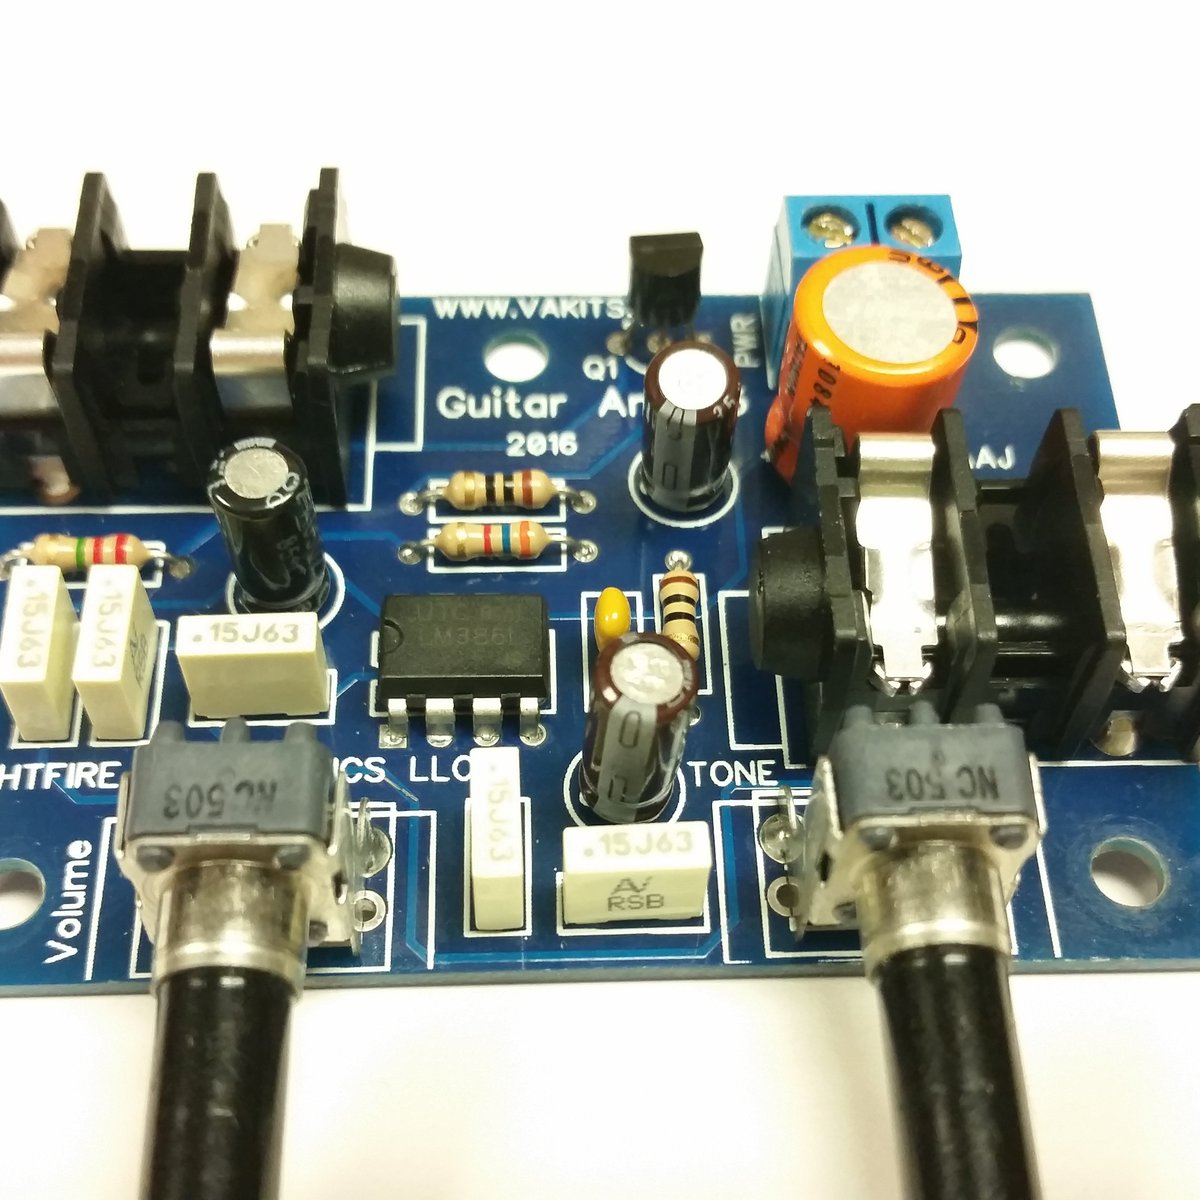 Guitar Mini Amplifier Kit 1127 From Nightfire Electronics Llc On Electronic Hobby Kits Projects Tindie